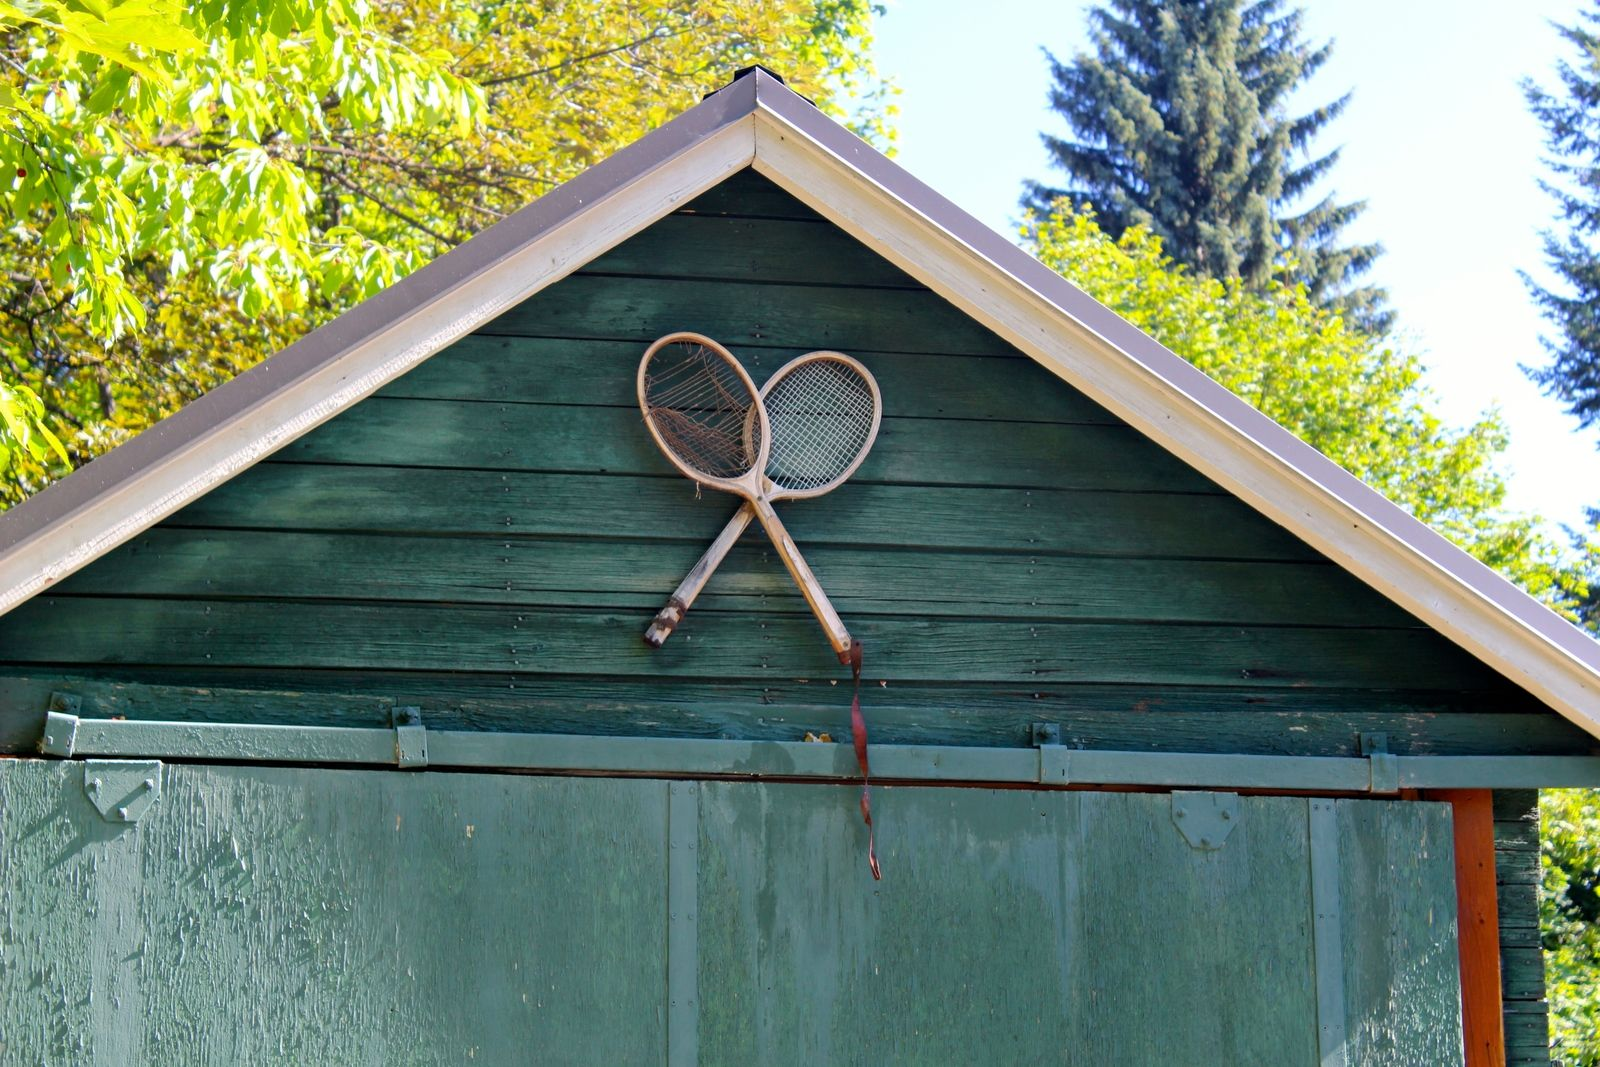 tennis-tourist-rossland-british-columbia-tennis-club-racquets-on-clubhouse-teri-church